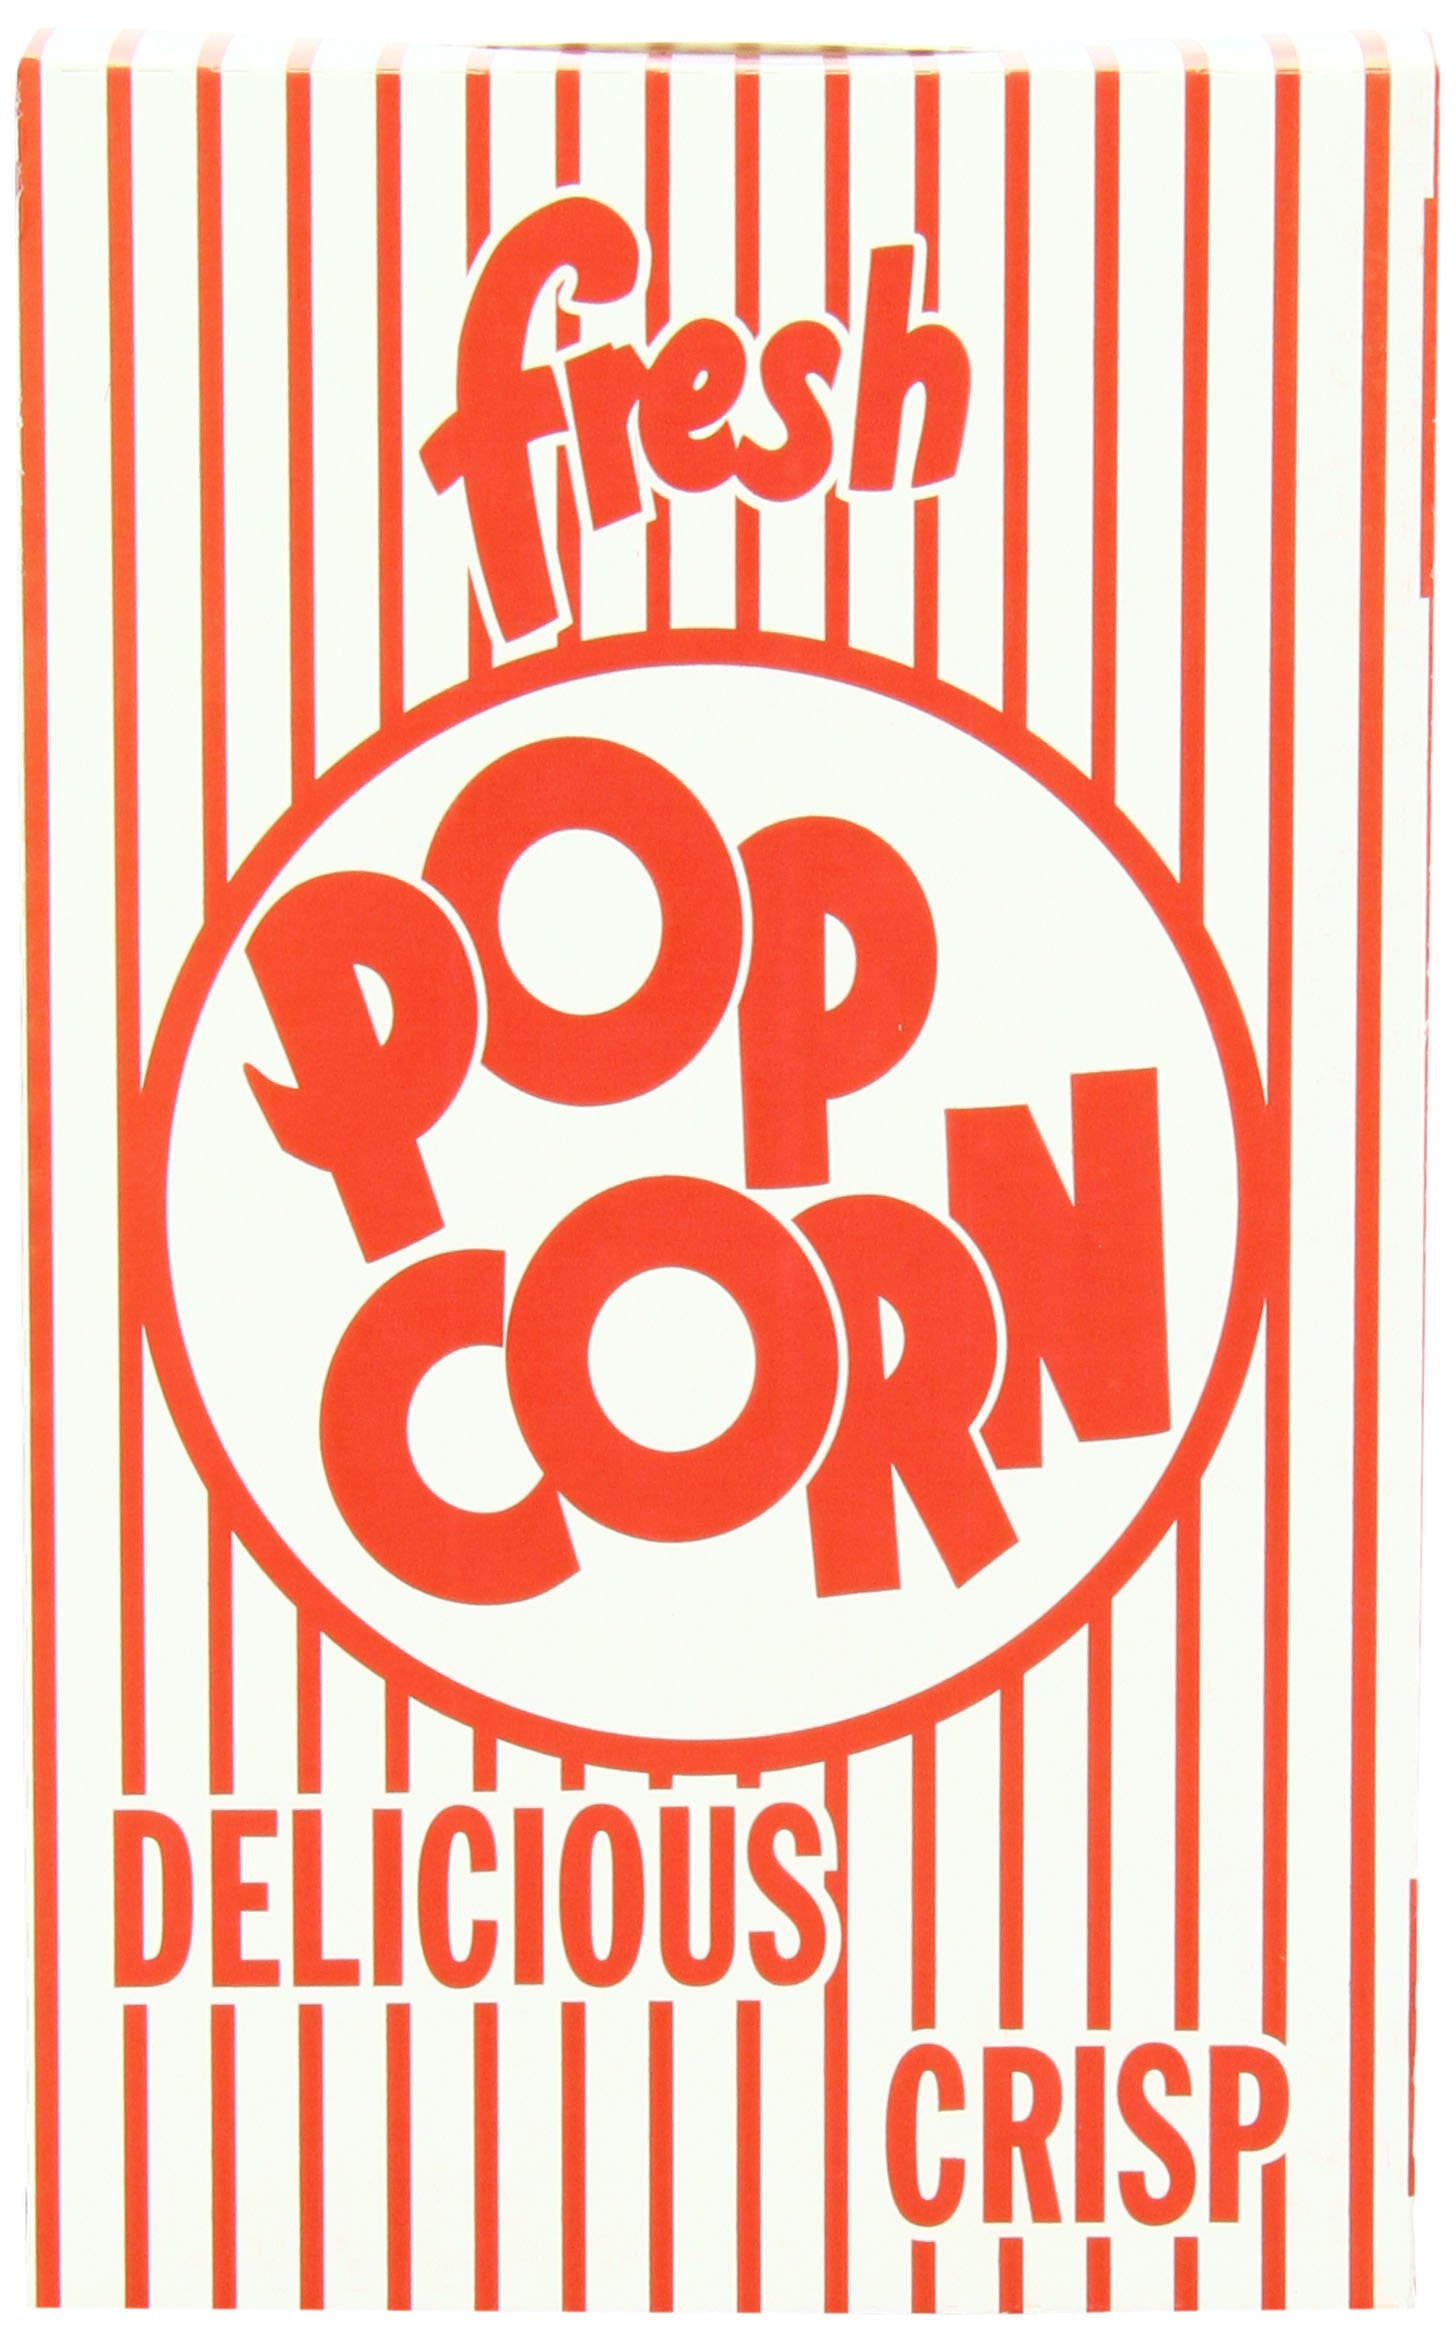 Snappy Popcorn 3E Close-Top Popcorn Box, 100/Case, 6 Pound by Snappy Popcorn (Image #2)